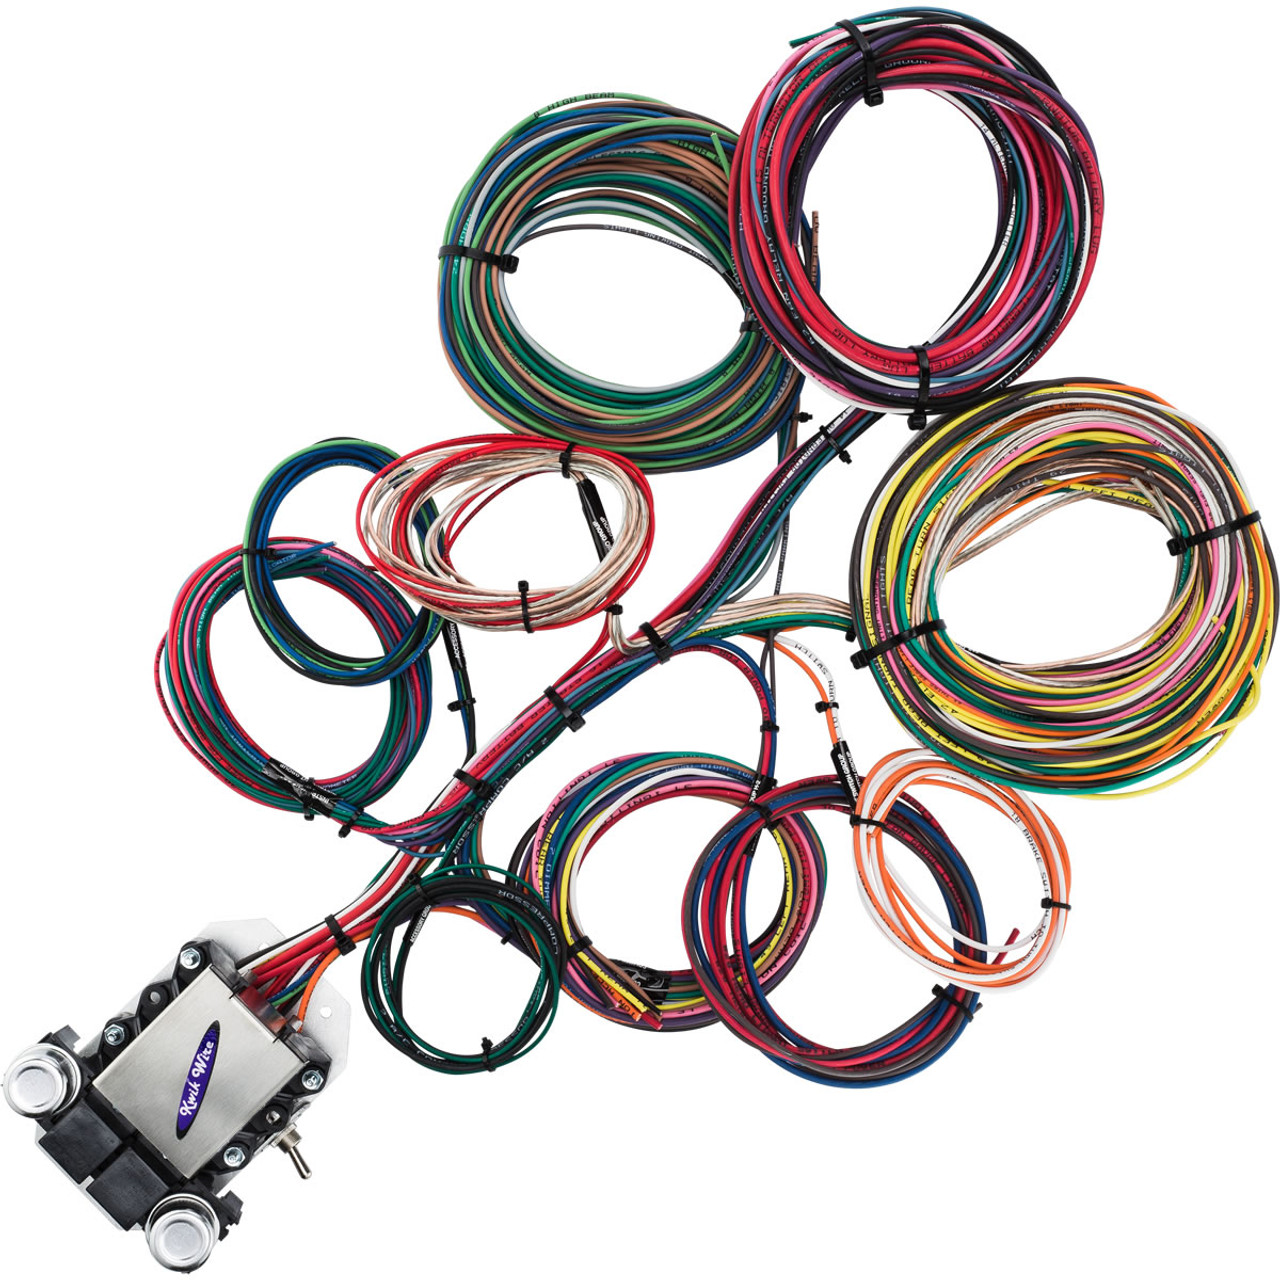 small resolution of 14 circuit wire harness kwikwire com electrify your ride painless wire harness installation instructions 10206 wire harness instruction